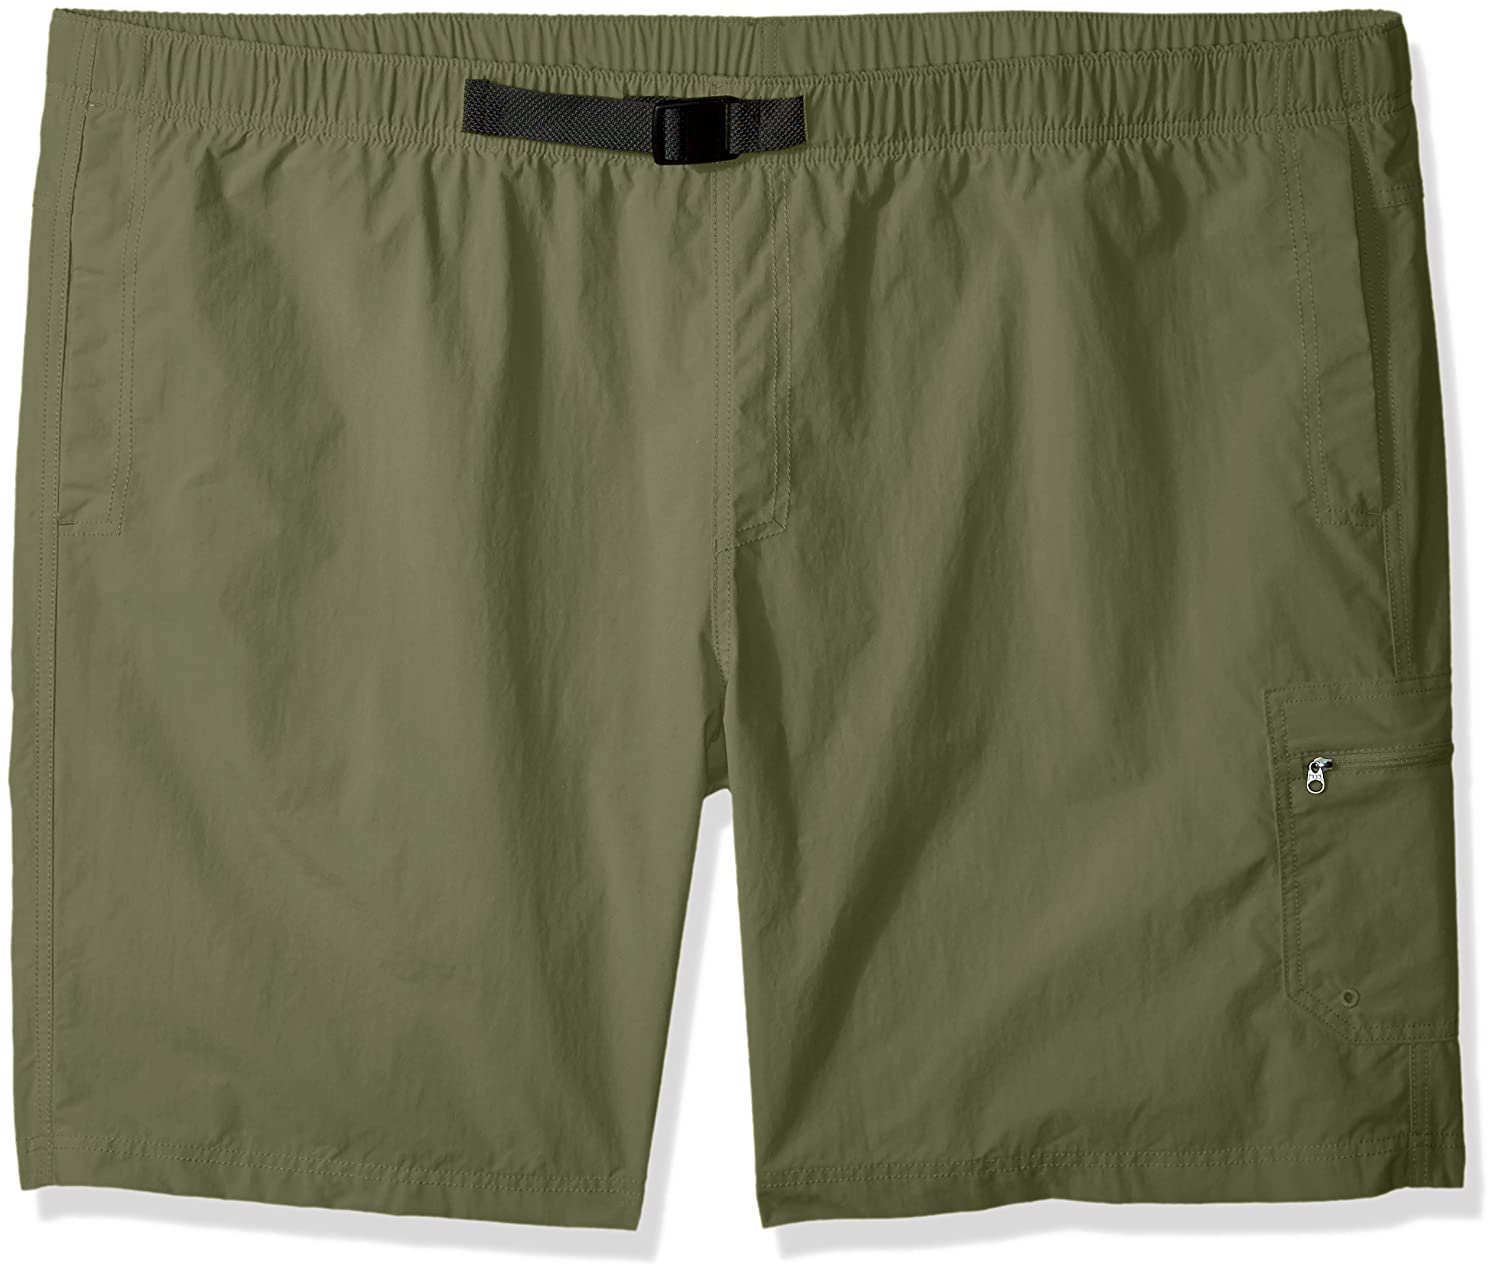 Columbia Men's Palmerston Peak Short-Big 1449845